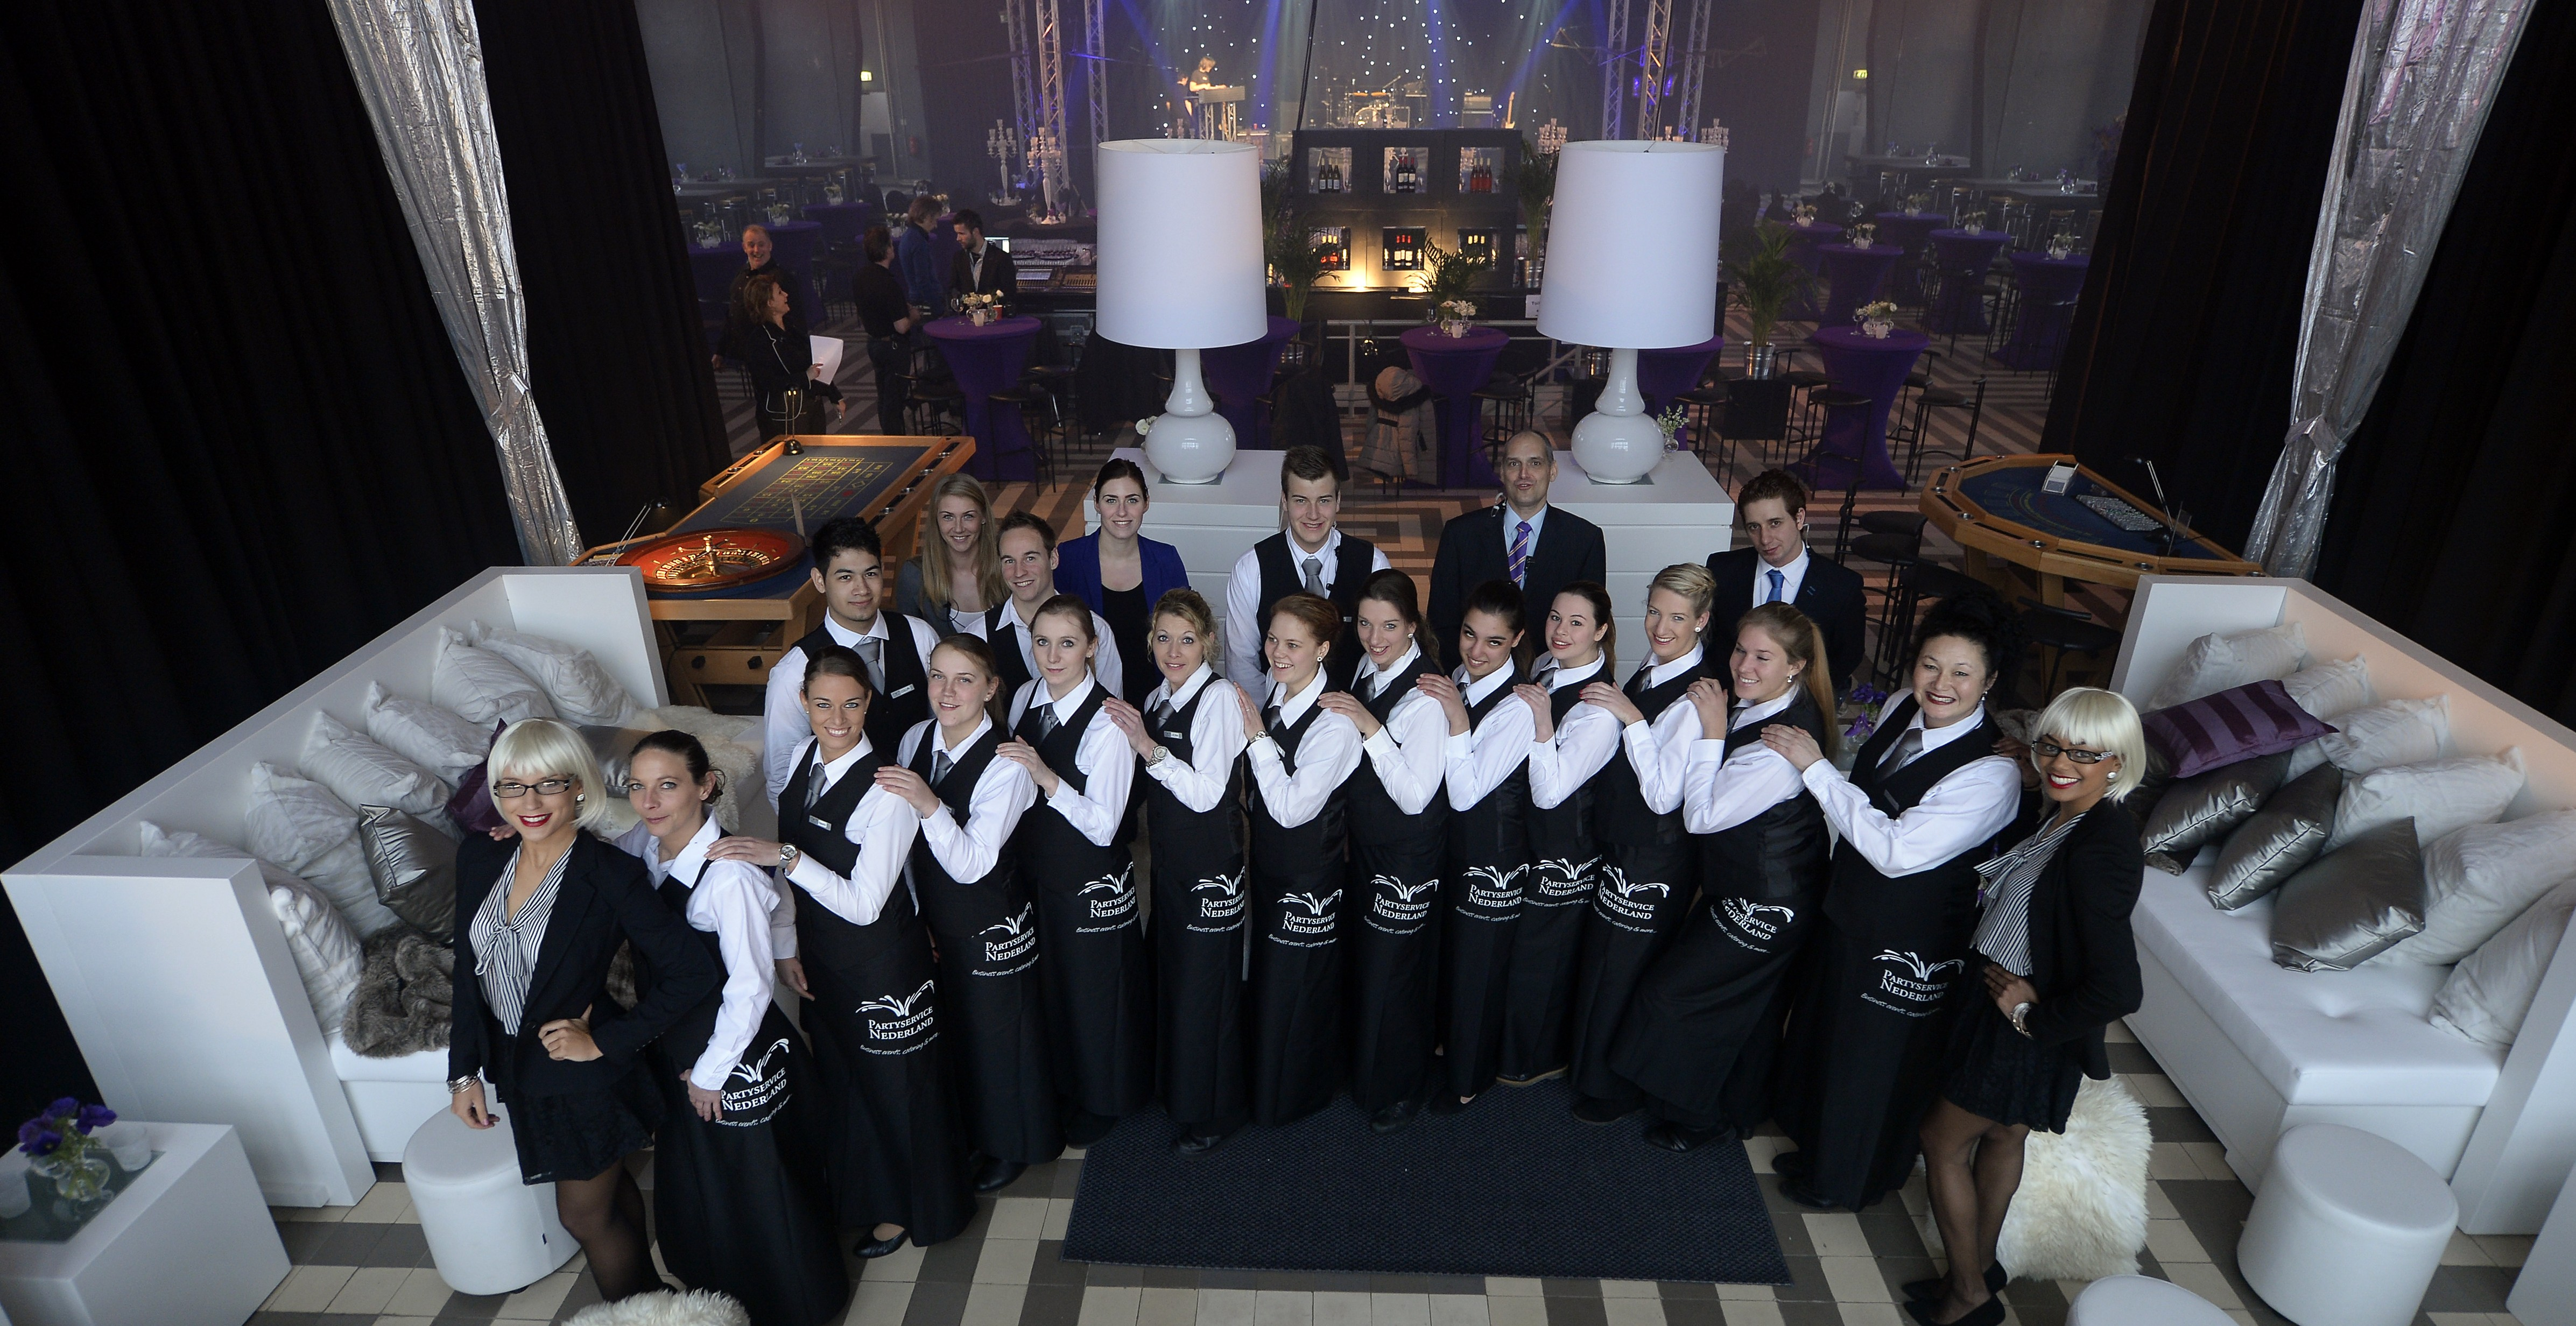 partyservice nederland-catering-personeel